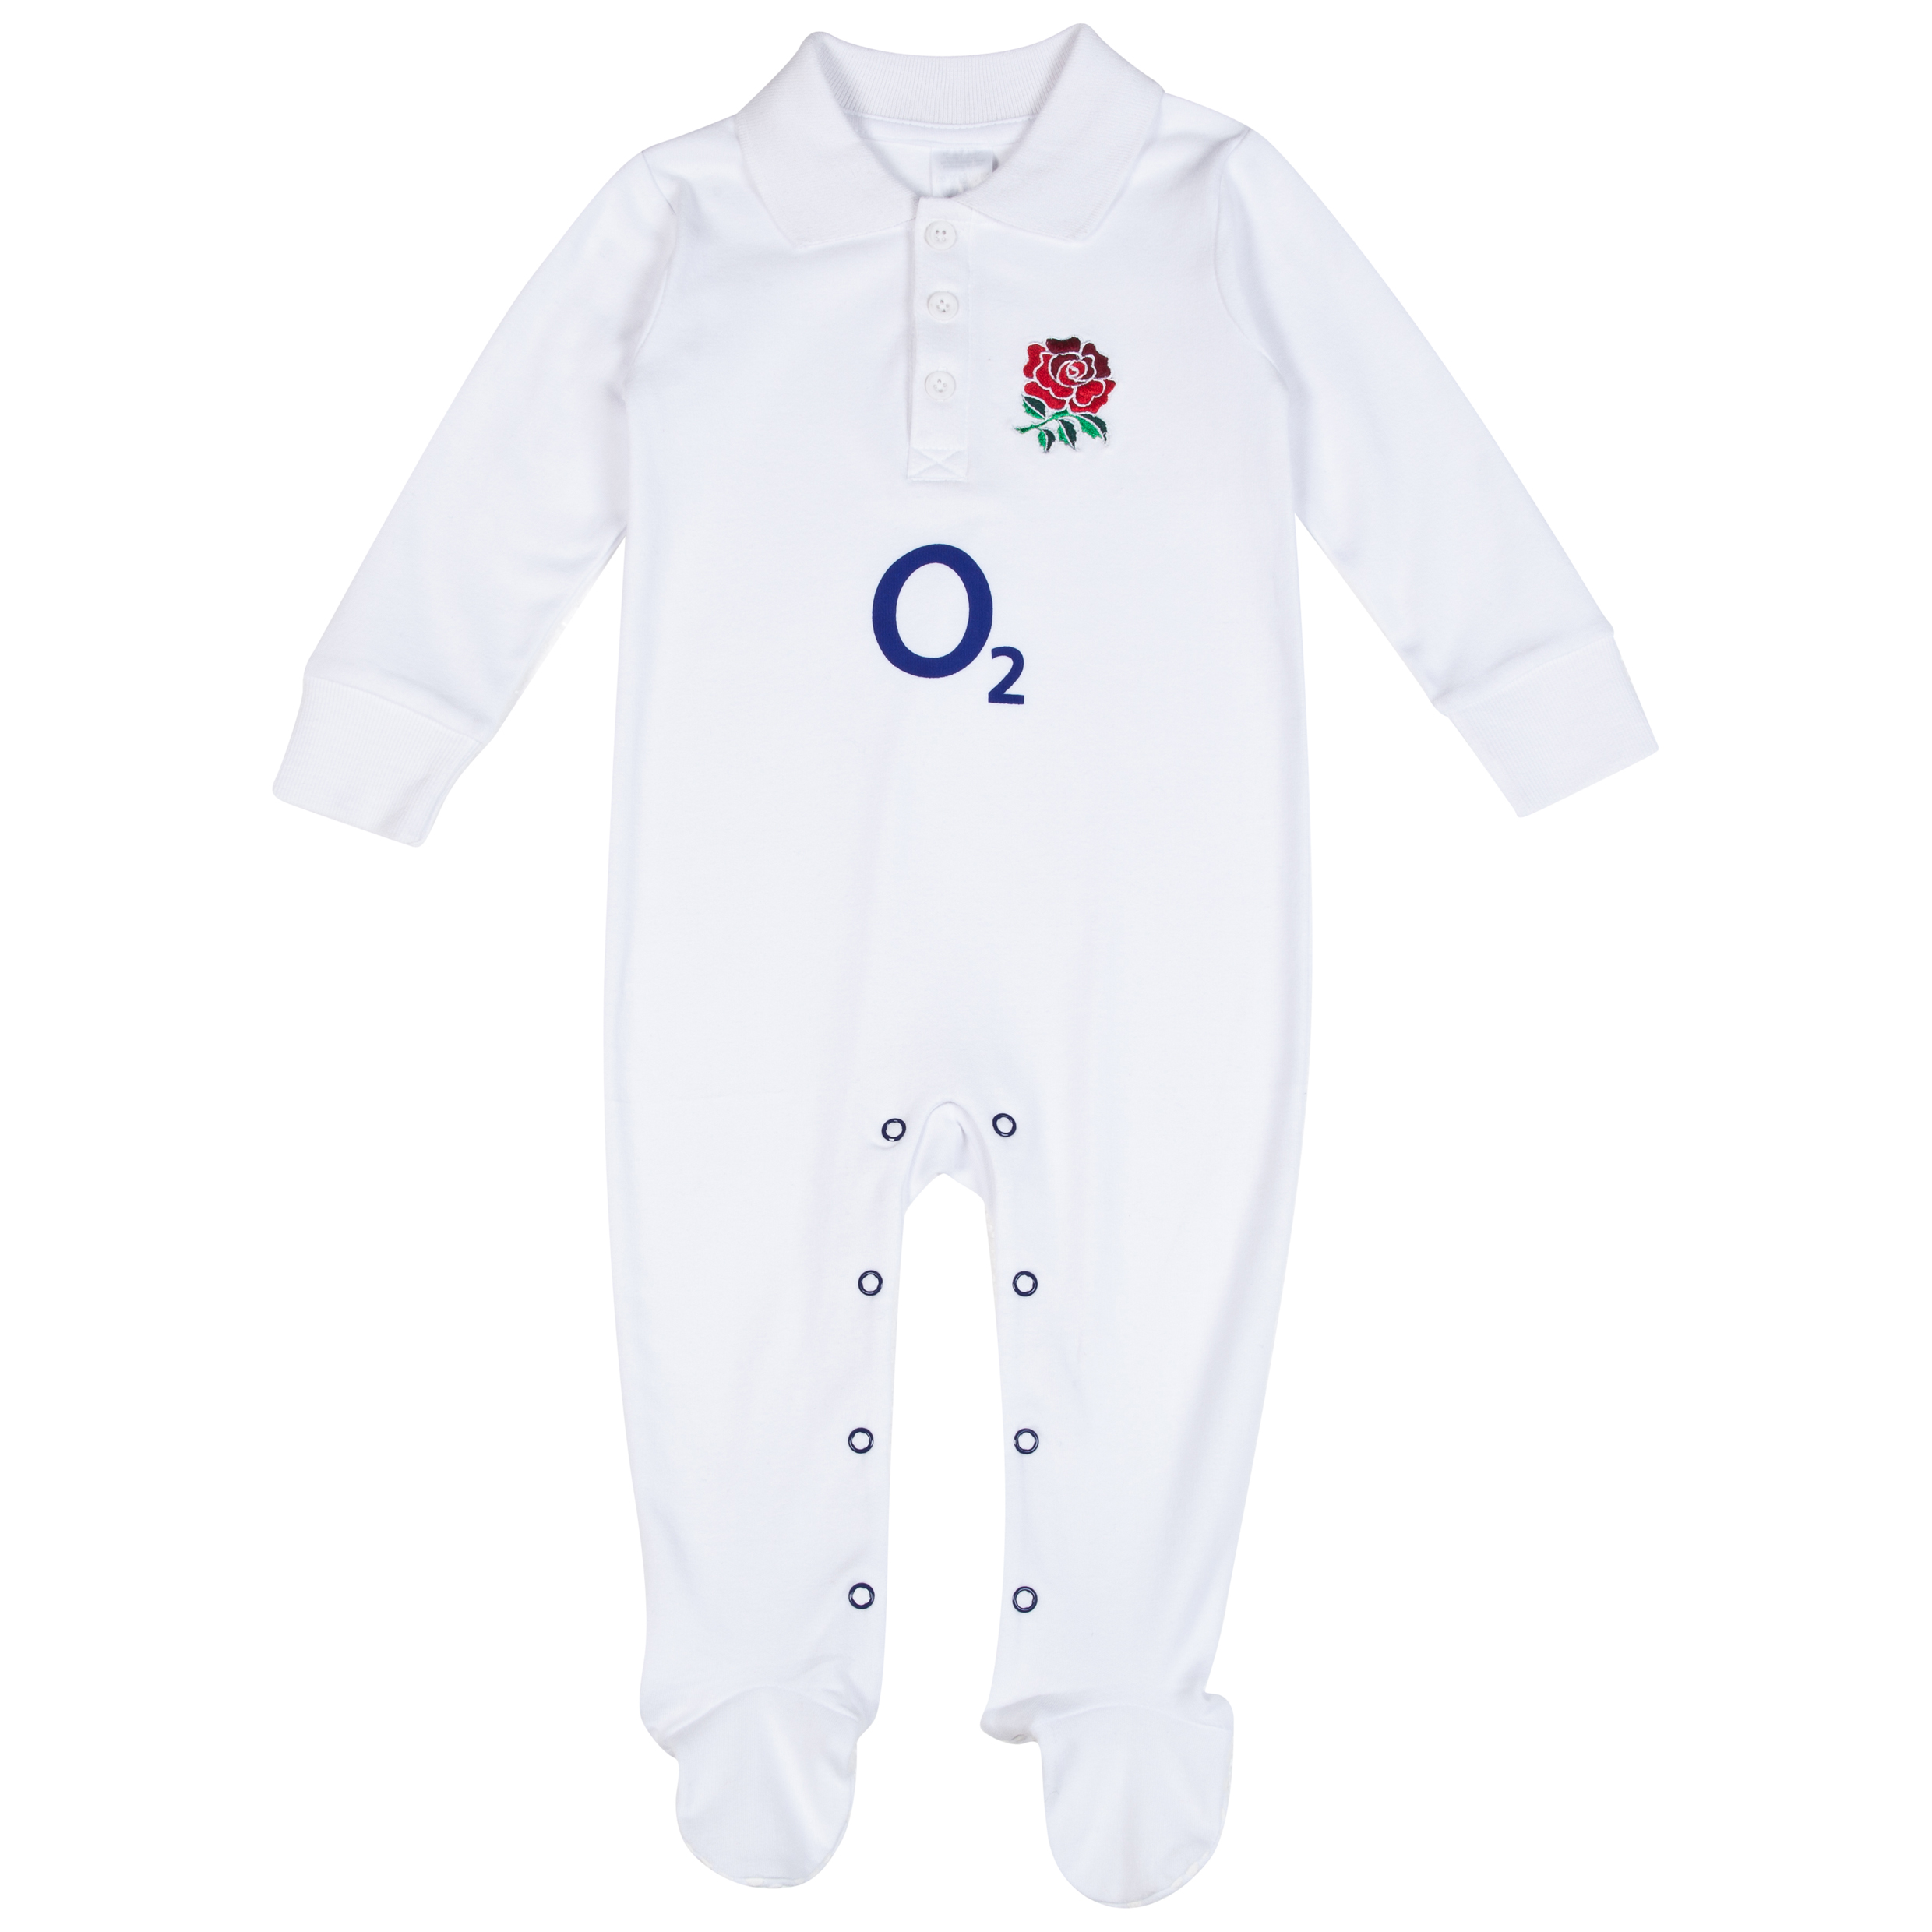 England Rugby Kit Sleepsuit 2013/14 White